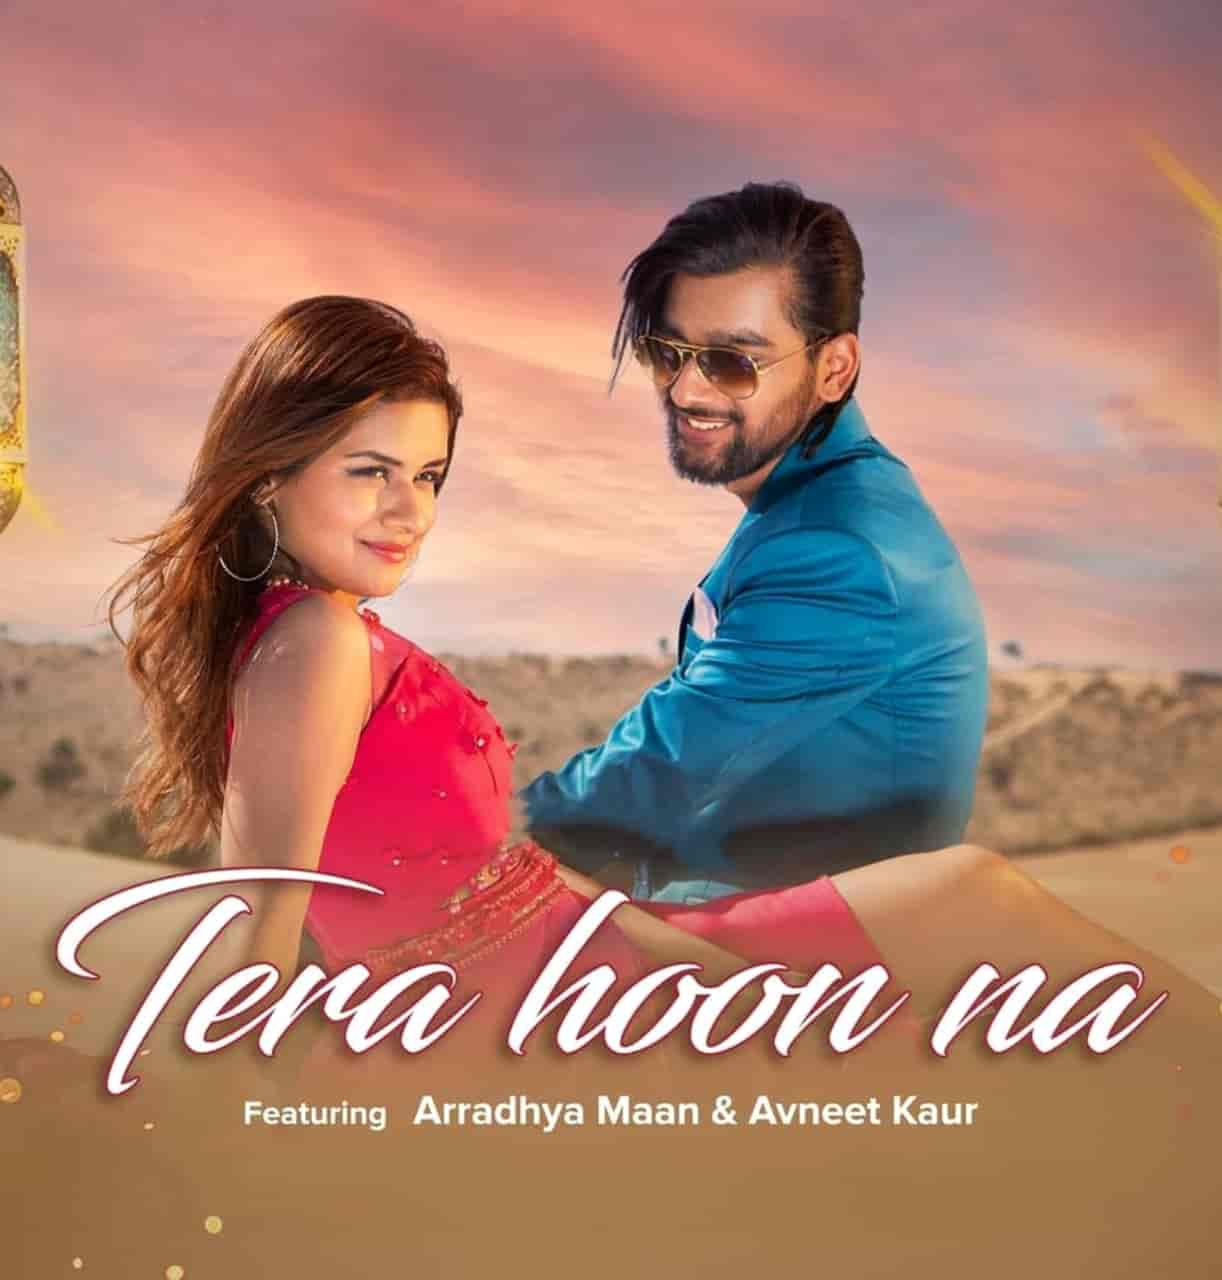 Tera Hoon Na Hindi Song Image Features Avneet Kaur